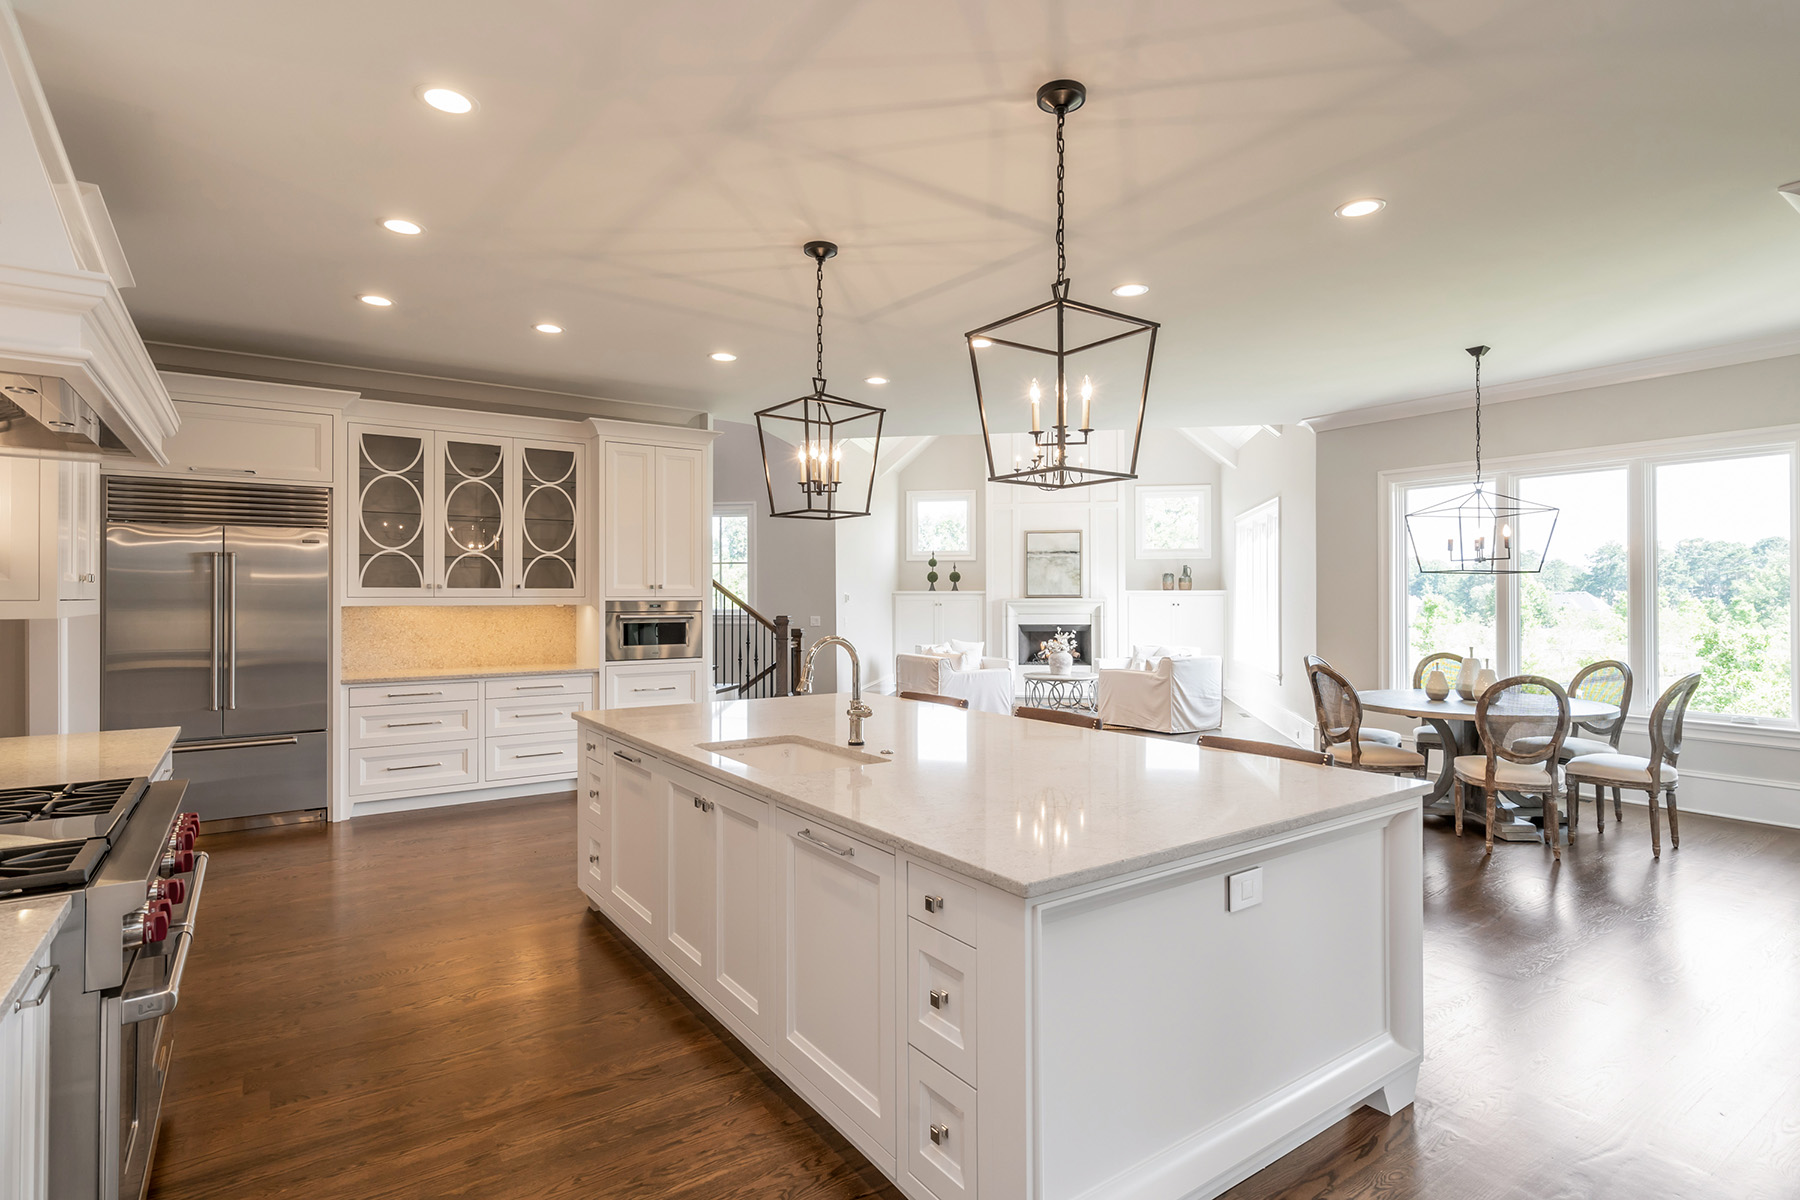 Single Family Homes for Sale at Spectacularly Appointed New Construction In Gated Community 10140 Cedar Ridge Drive Milton, Georgia 30004 United States